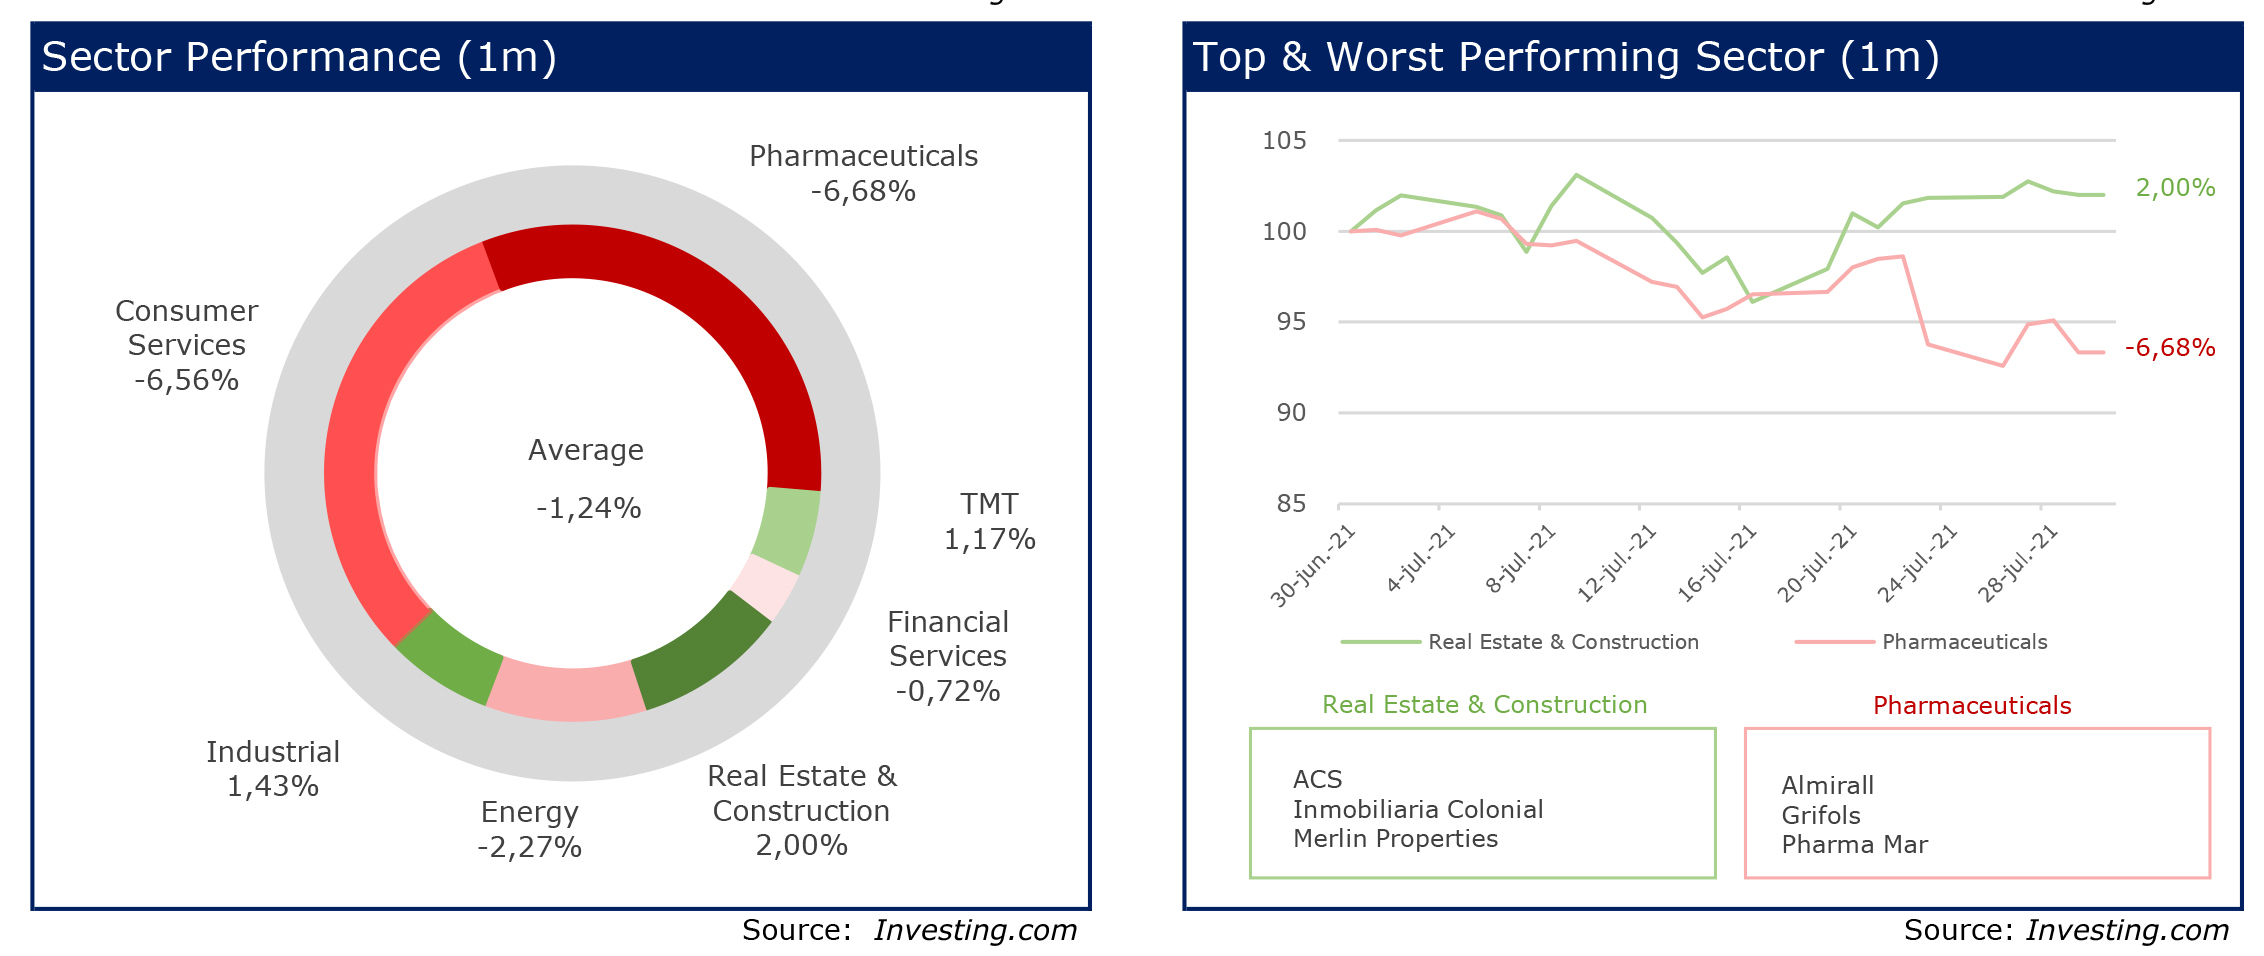 RS Corporate Finance 24 Chart Sector Performance-Top & worst sector 1month julio 2021